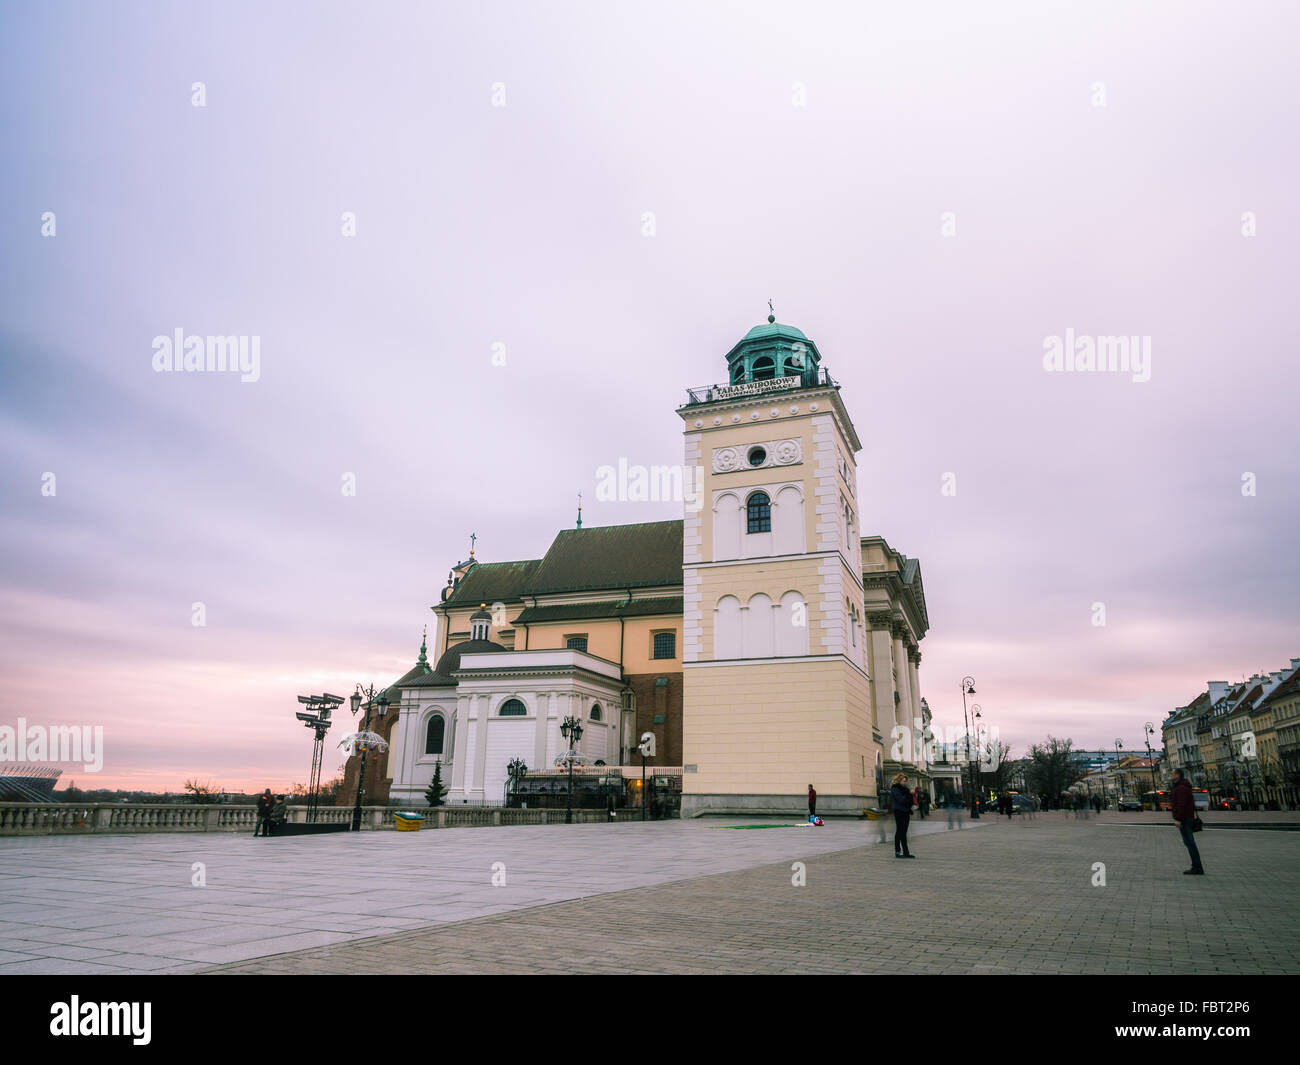 Saint Anna's church in the Old Town of Warsaw, Poland in the early evening at winter time. - Stock Image